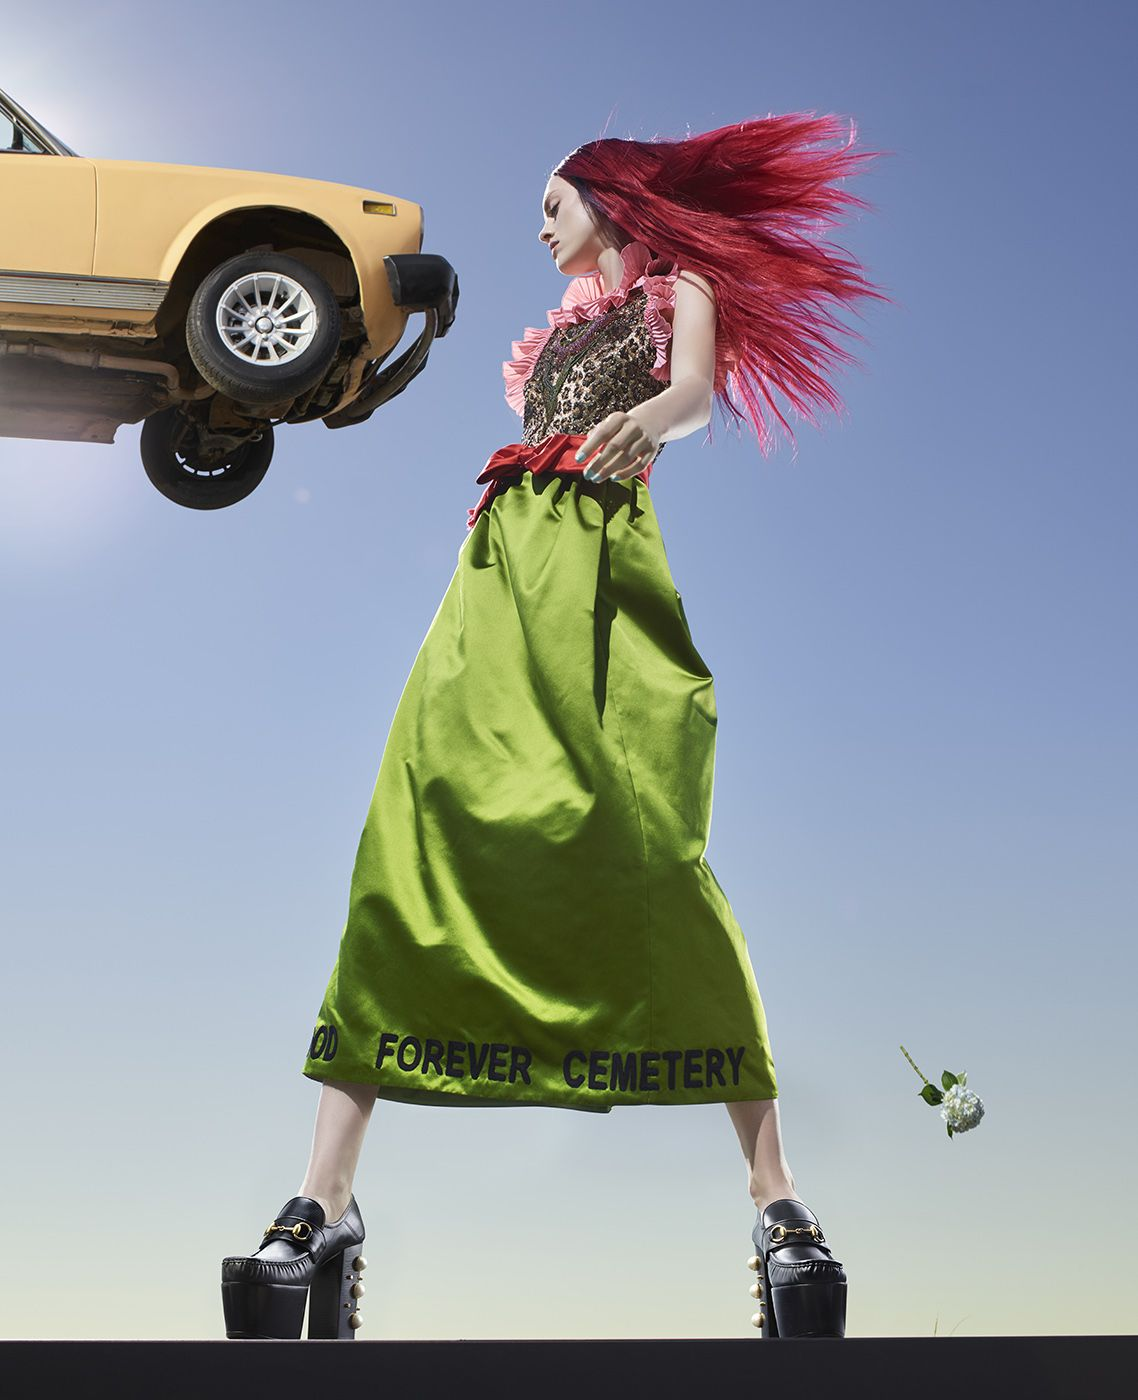 Fashion (with Flying Orange Car), Los Angeles, 2016, 40 x 32 1/2 Inches, Archival Pigment Print, Edition of 5